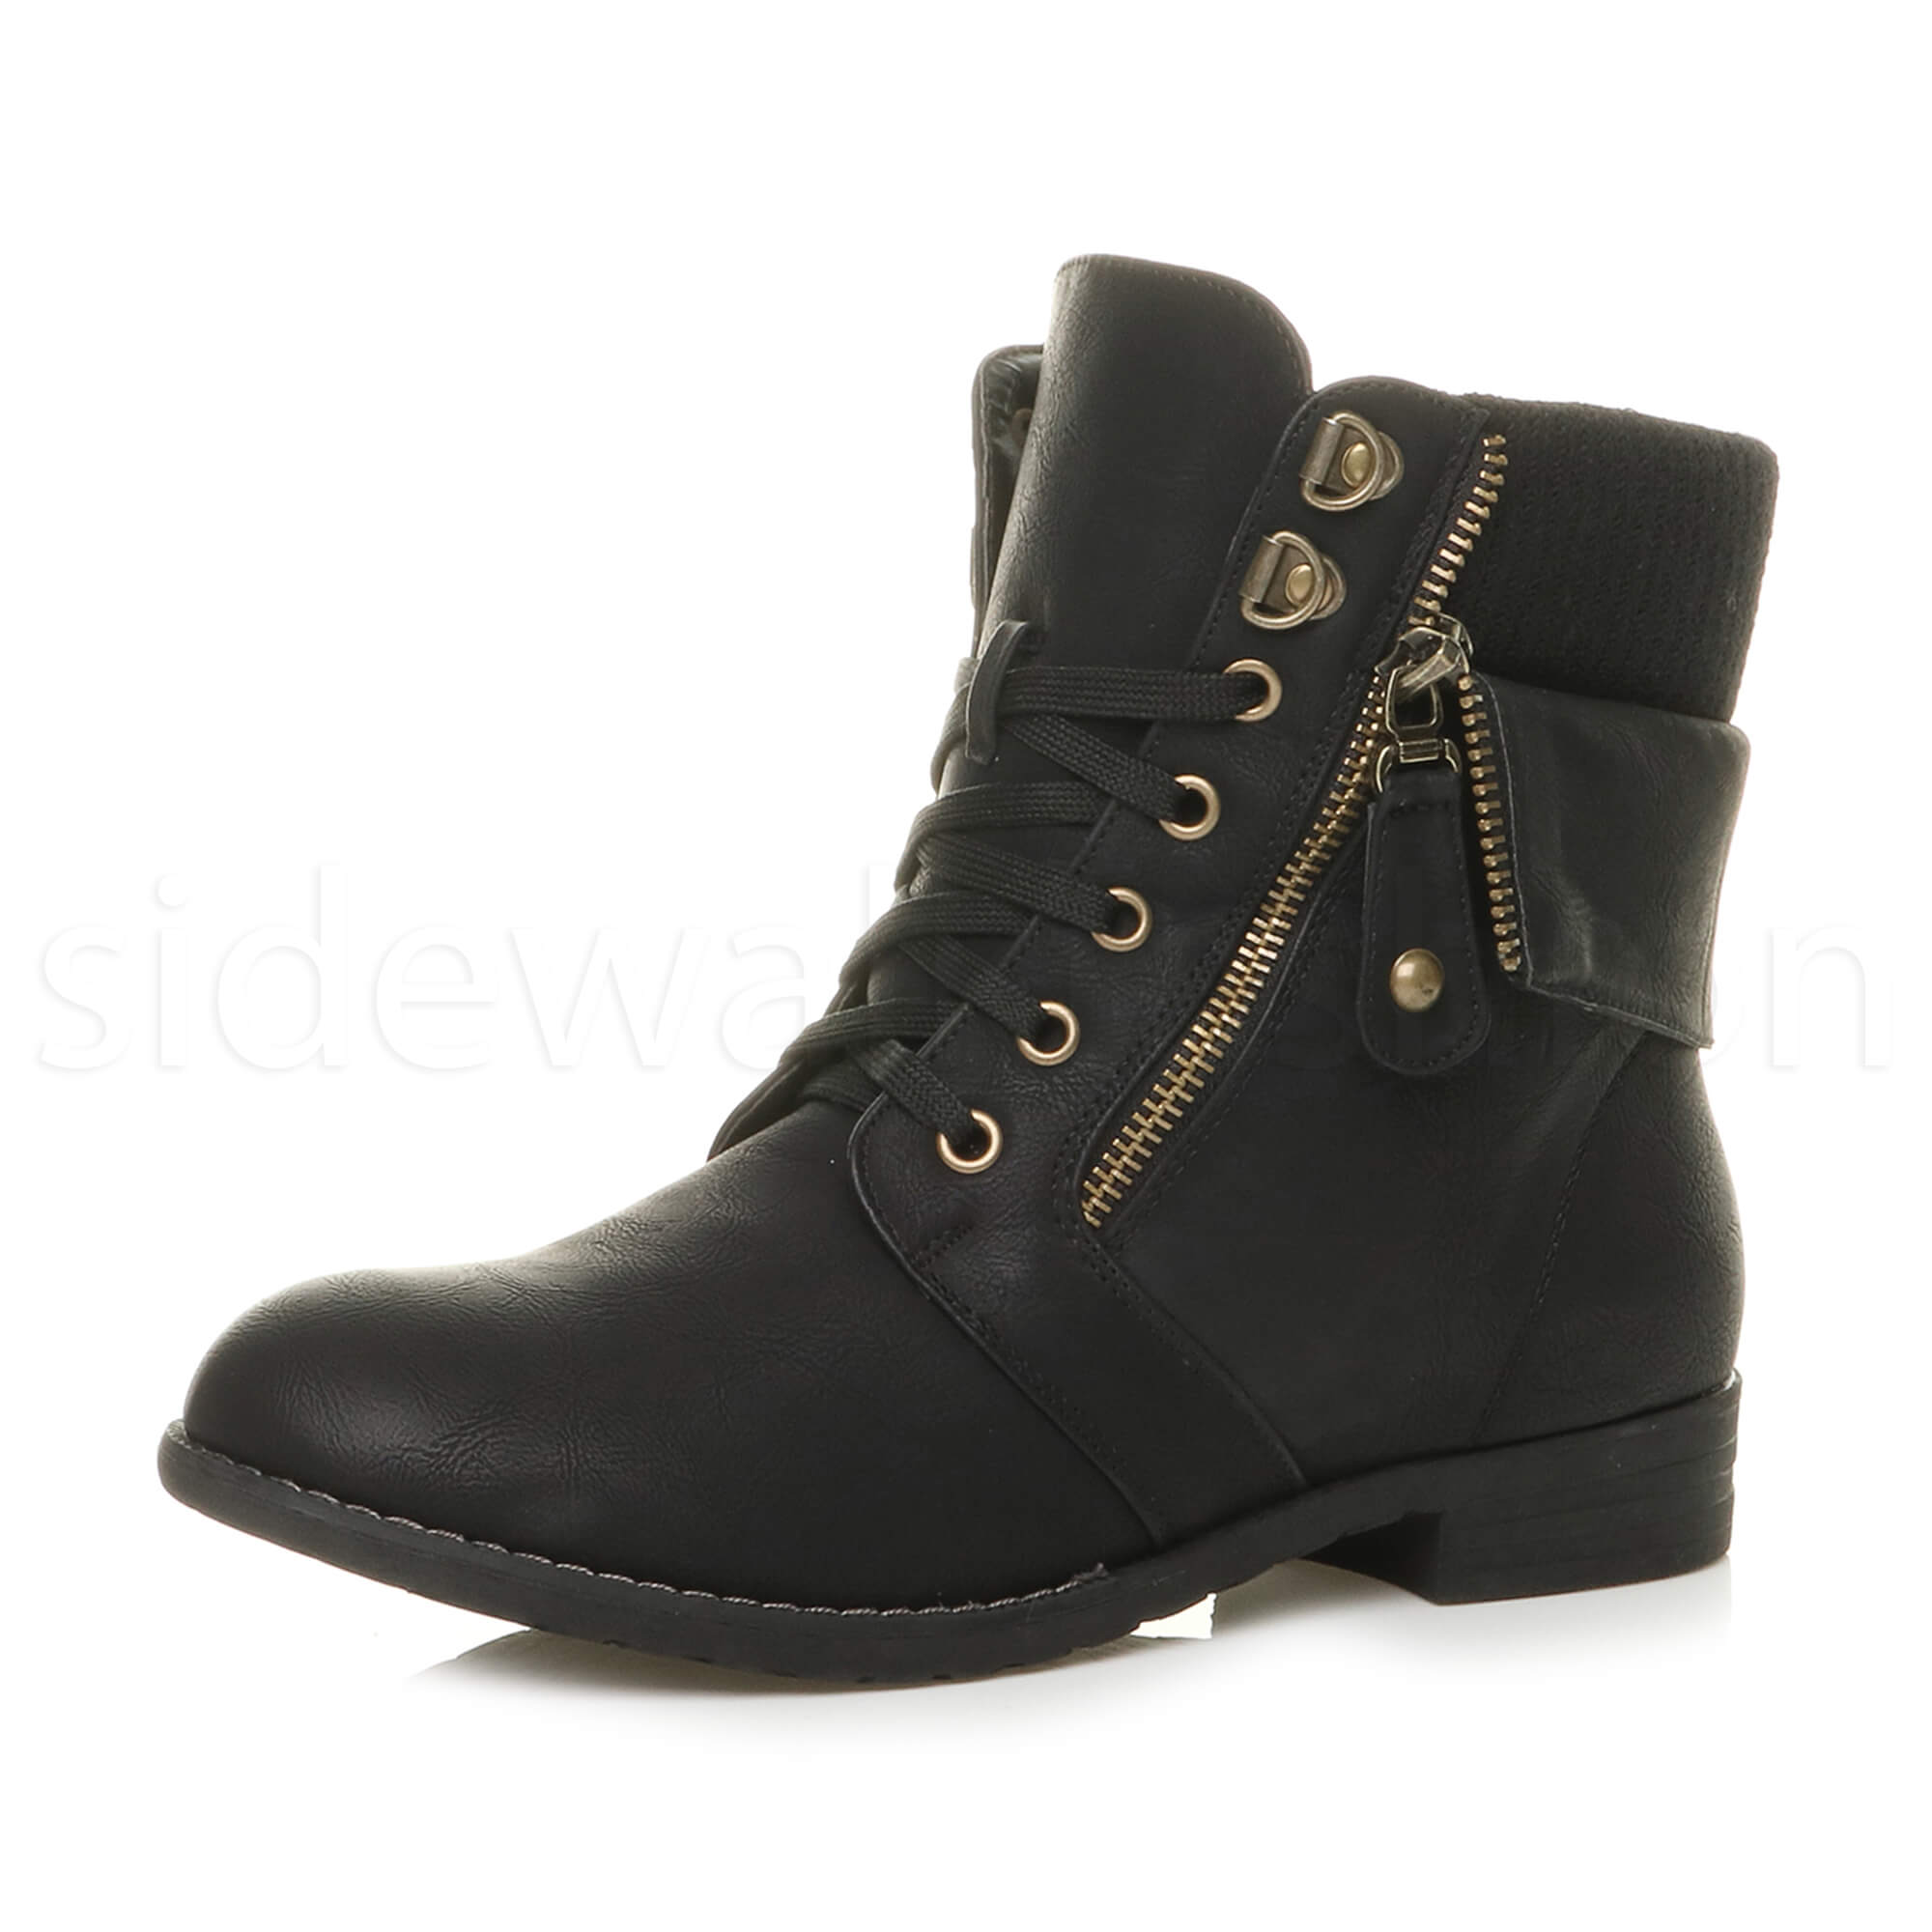 Unique Womens Combat Style Army Worker Military Ankle Boots Flat Punk Goth Shoes Size | EBay